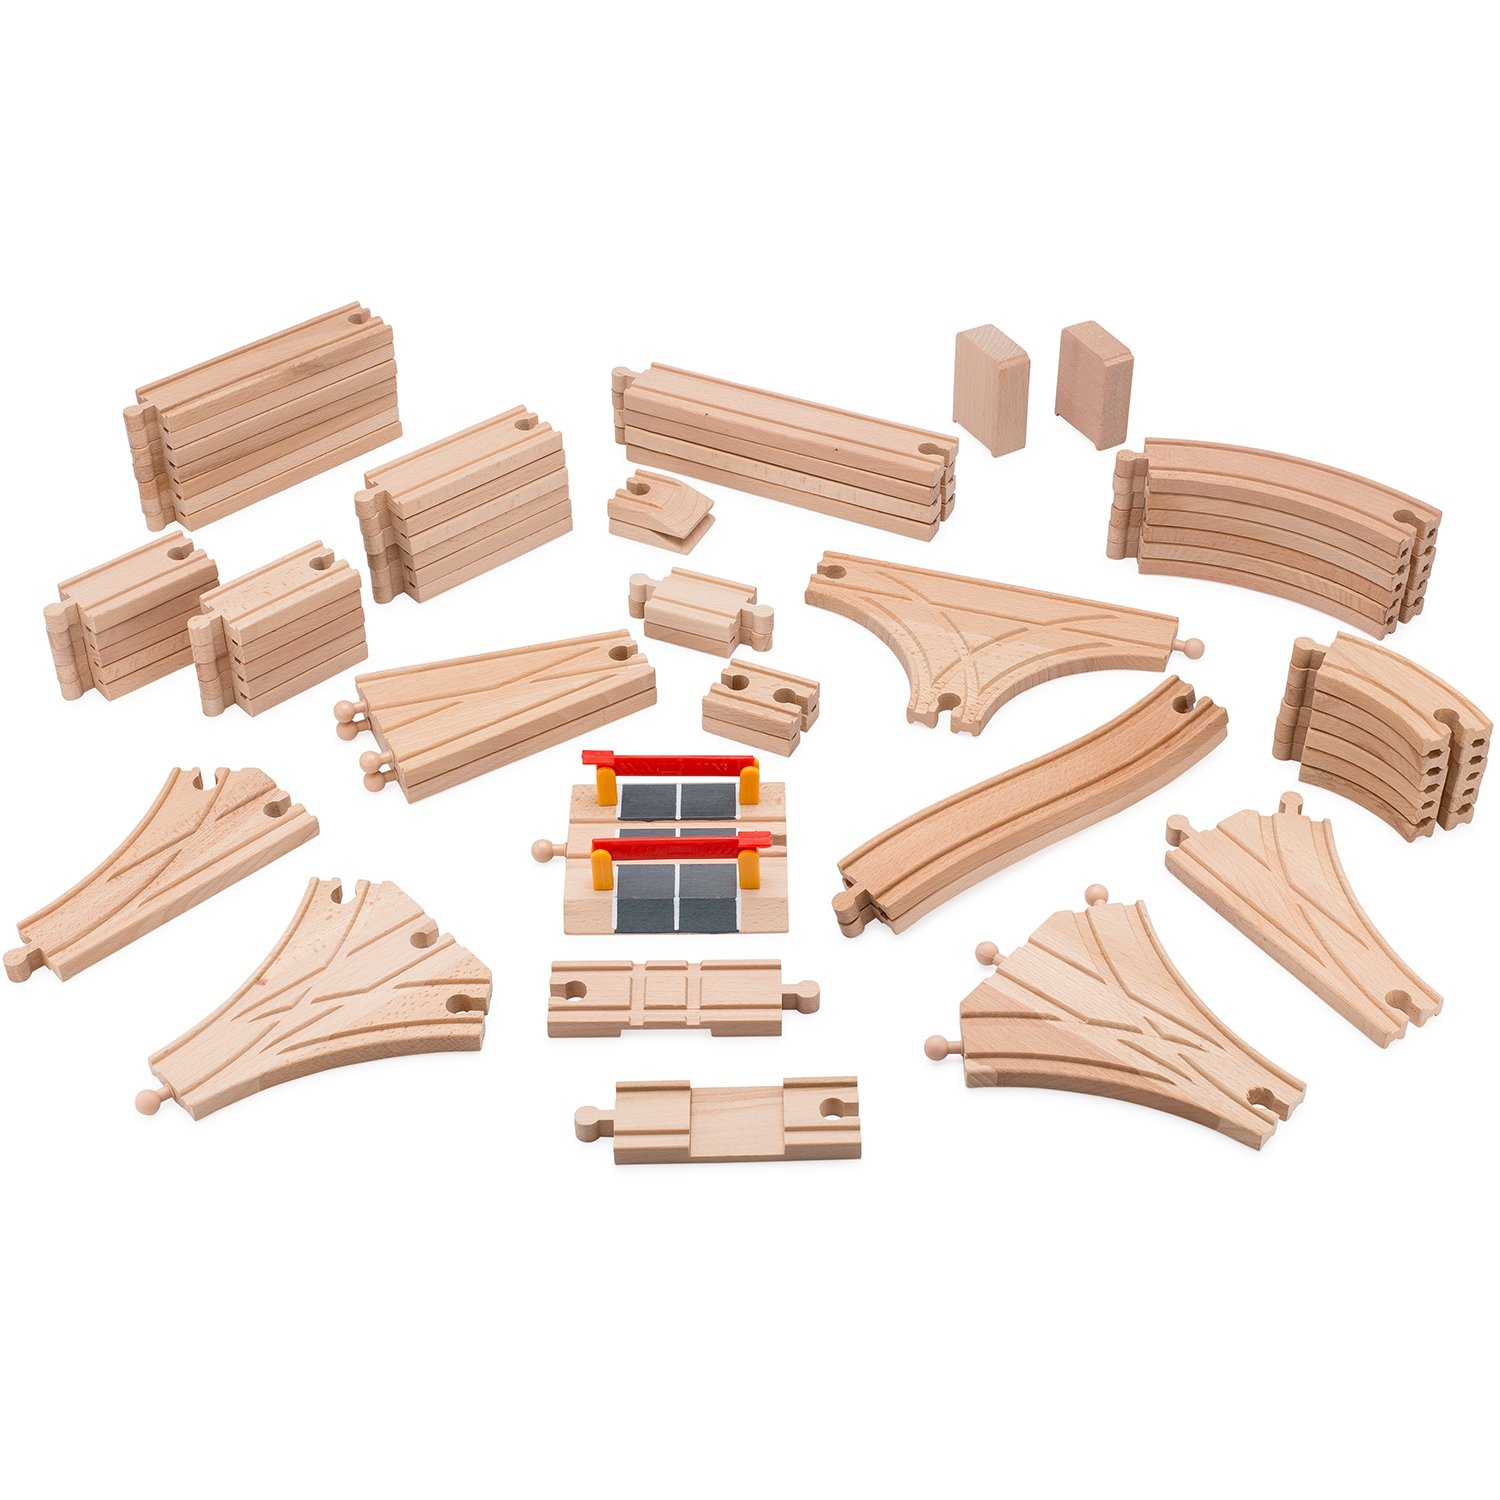 Playbees Wooden Train Track Set 59 Pcs, Wooden Railroad Pieces Compatible w/ Most Name Brand Wood Railway Systems, Perfect for Preschool Toddler Boys and Girls